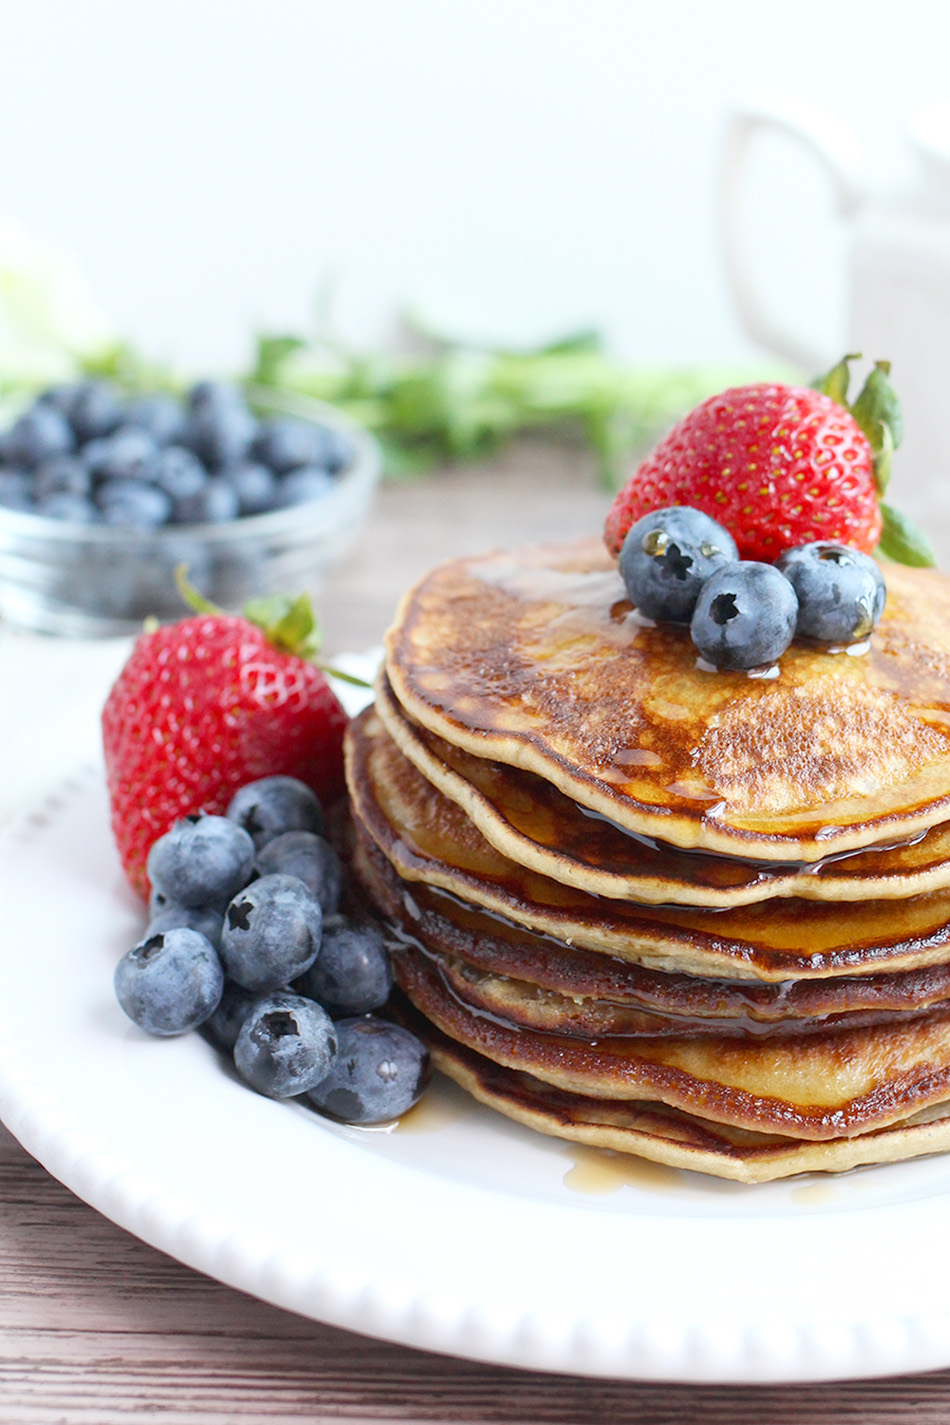 Perfect Paleo Pancakes made with Cassava Flour, Nut-Free, Grain-Free, Dairy-Free Recipe